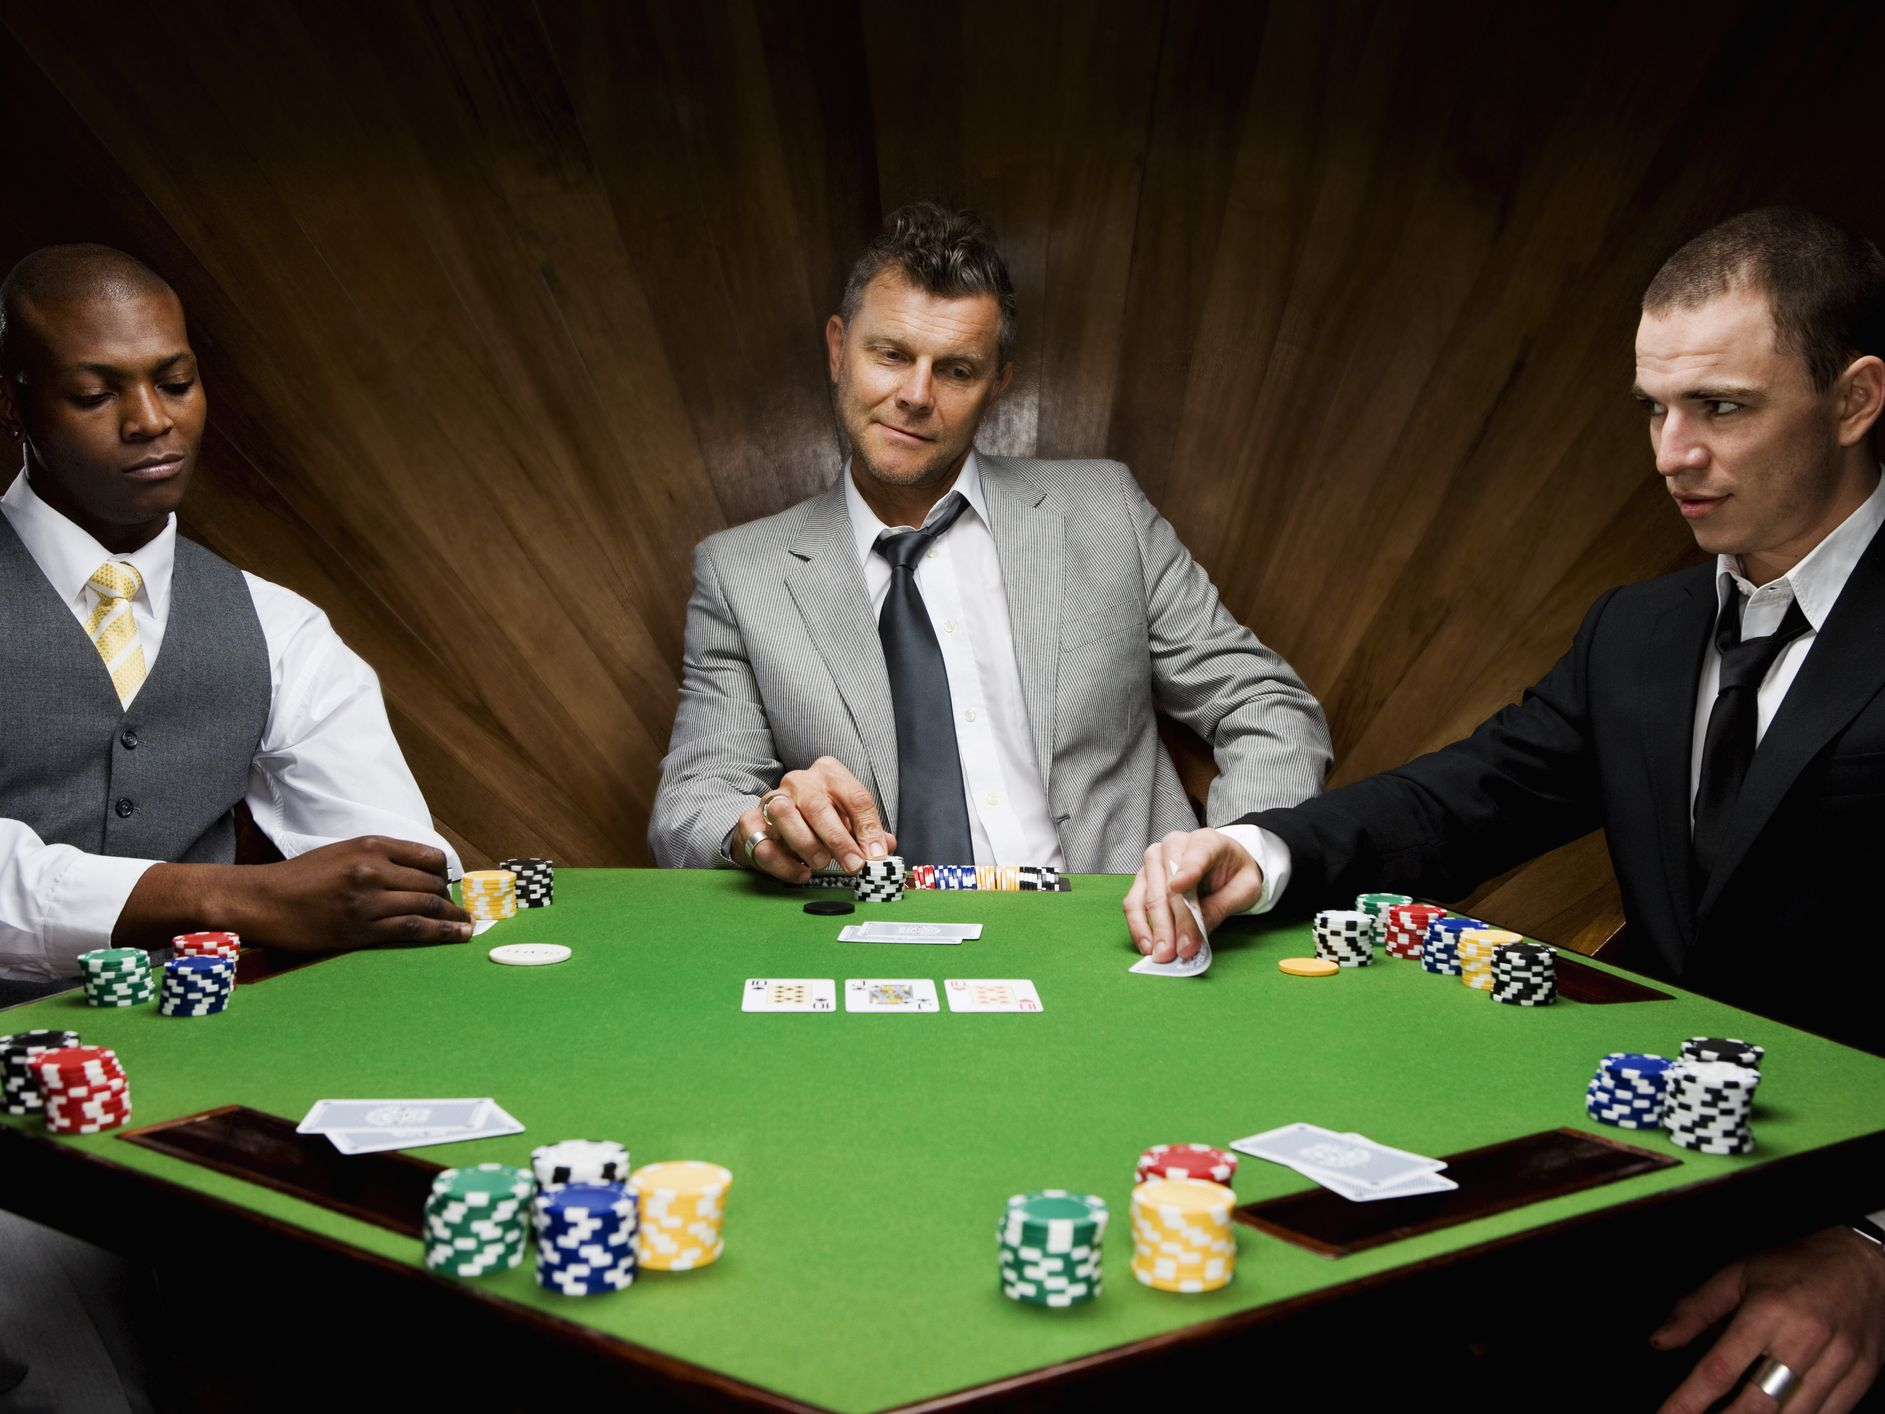 The 5 Best Types of Online Poker Advantages